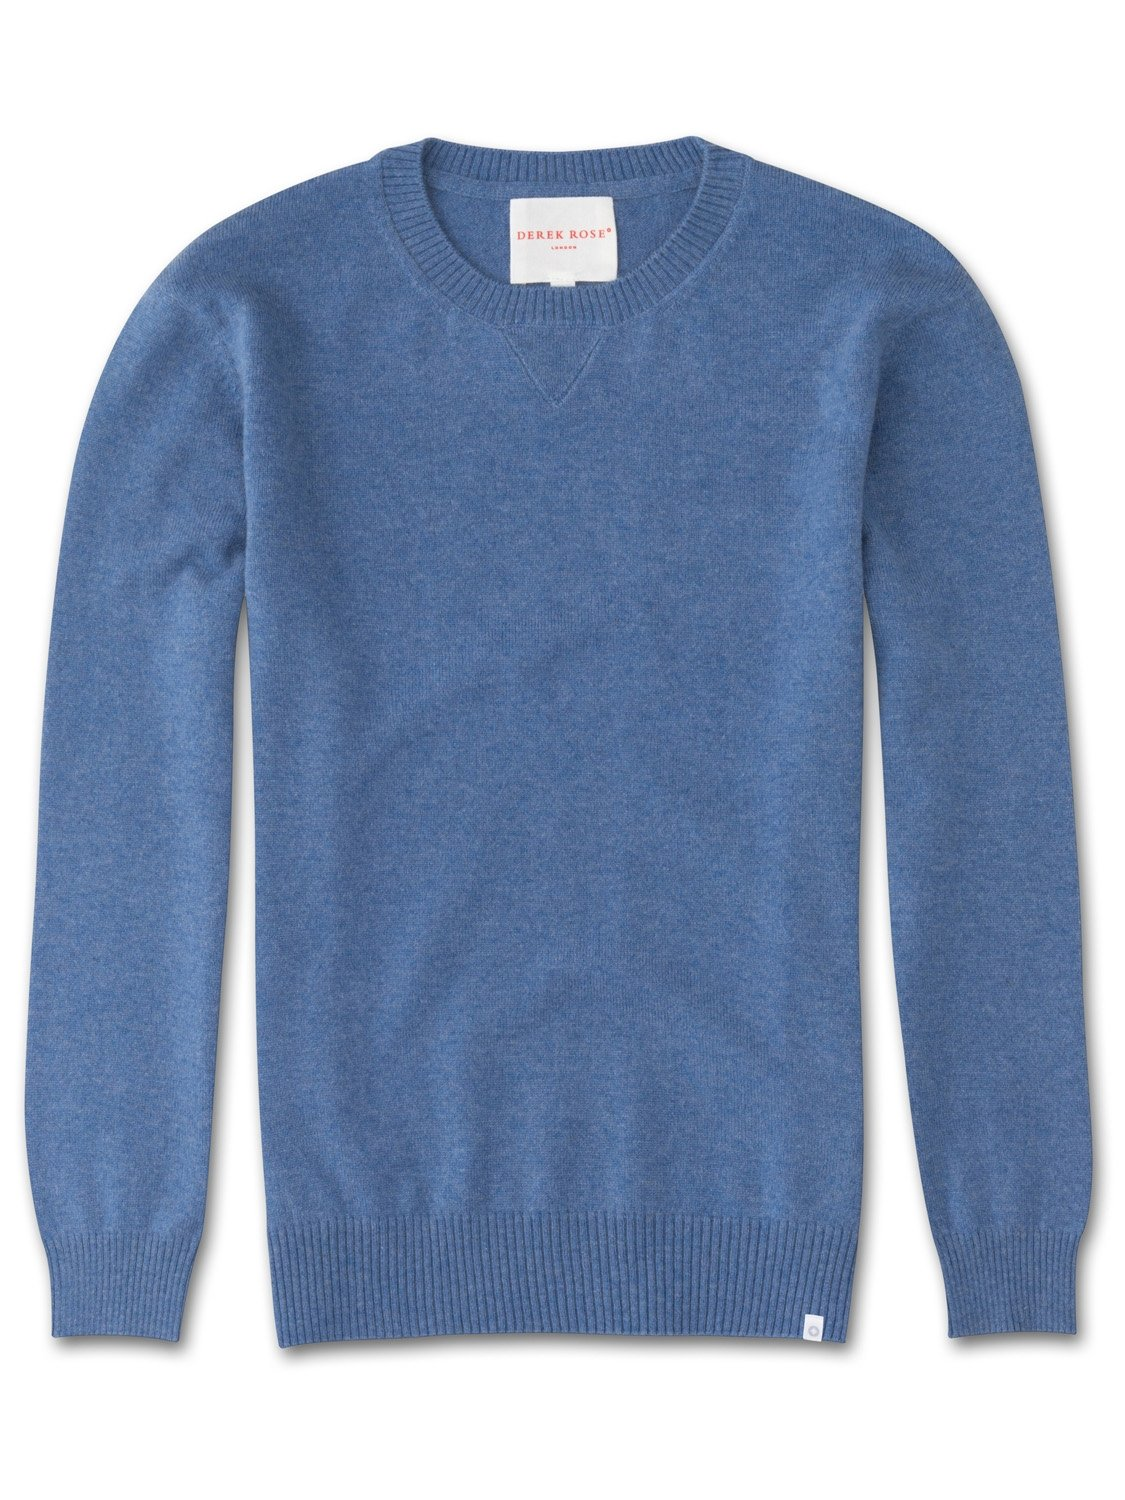 Women's Cashmere Sweater Finley 2 Pure Cashmere Blue